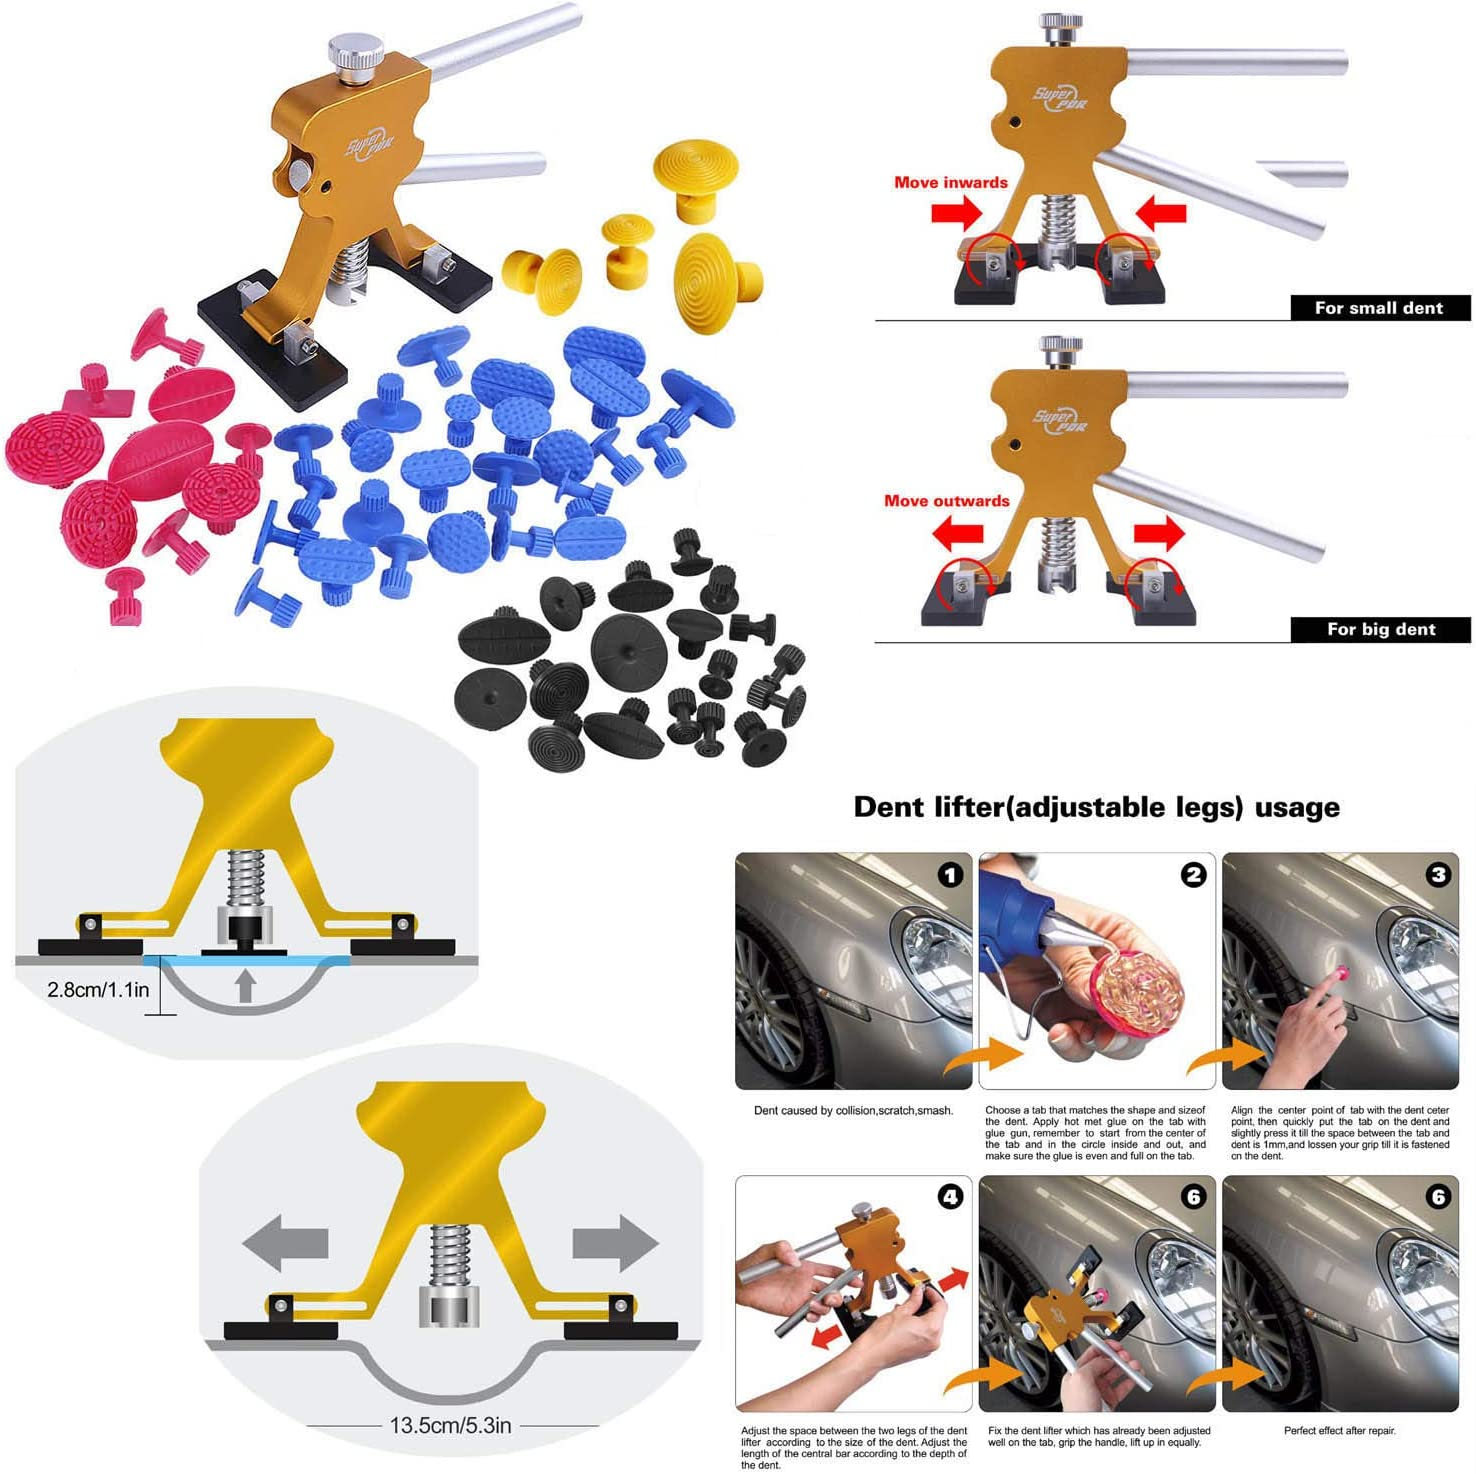 Paintless Dent Repair Tools Panels Trim Removal Kits The Most Complete Set of Dent Removal Tools 108pcs PDR Kit with 55pcs of Glue Dent Puller Taps and Car Dent Suction Cup Repair all kinds of dents